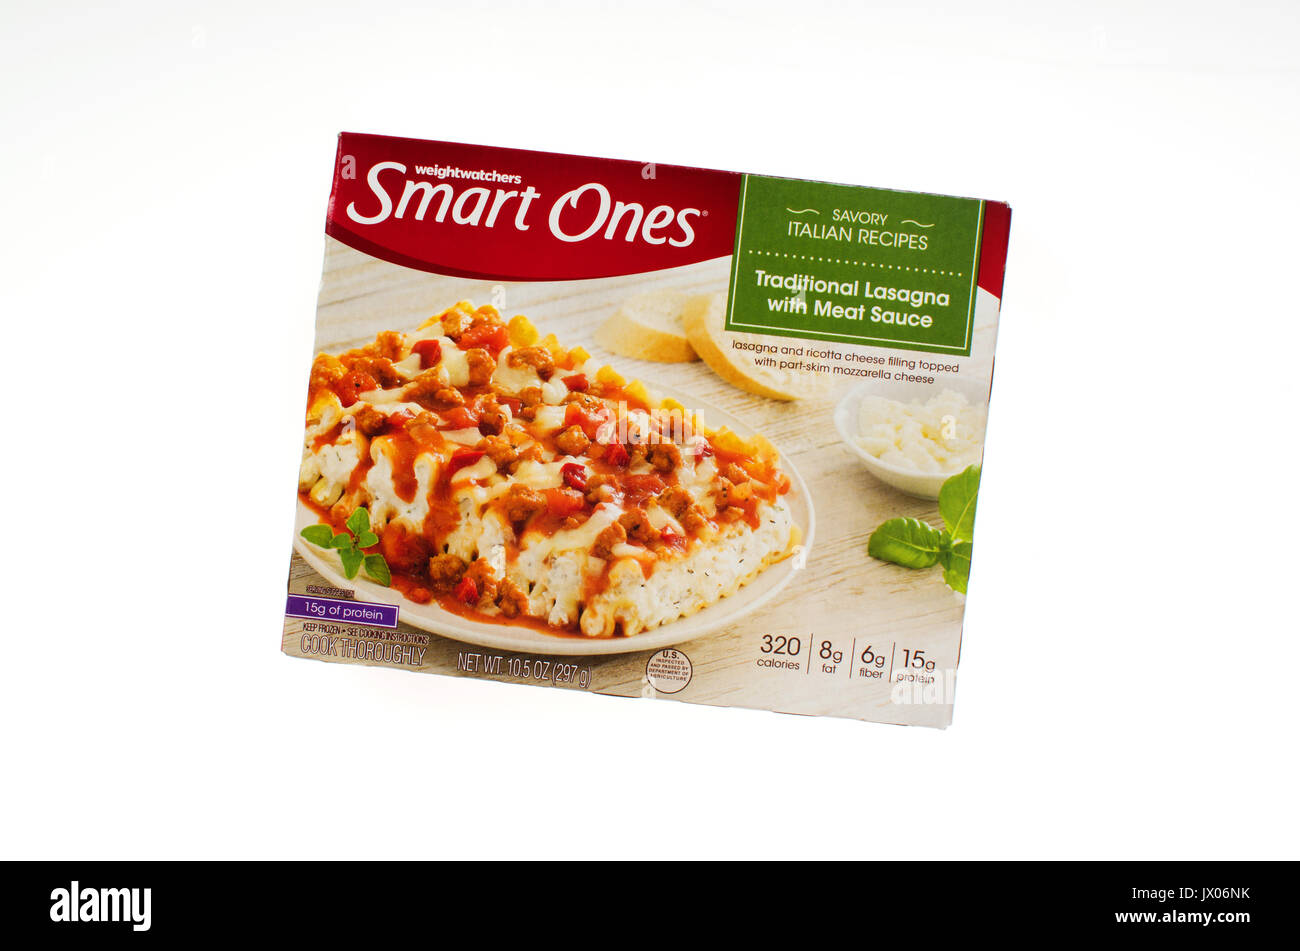 Unopened package of Weight Watchers Smart Ones frozen ready-meal Savory Italian Recipes Traditional Lasagna with Meat Sauce on white background, USA. - Stock Image